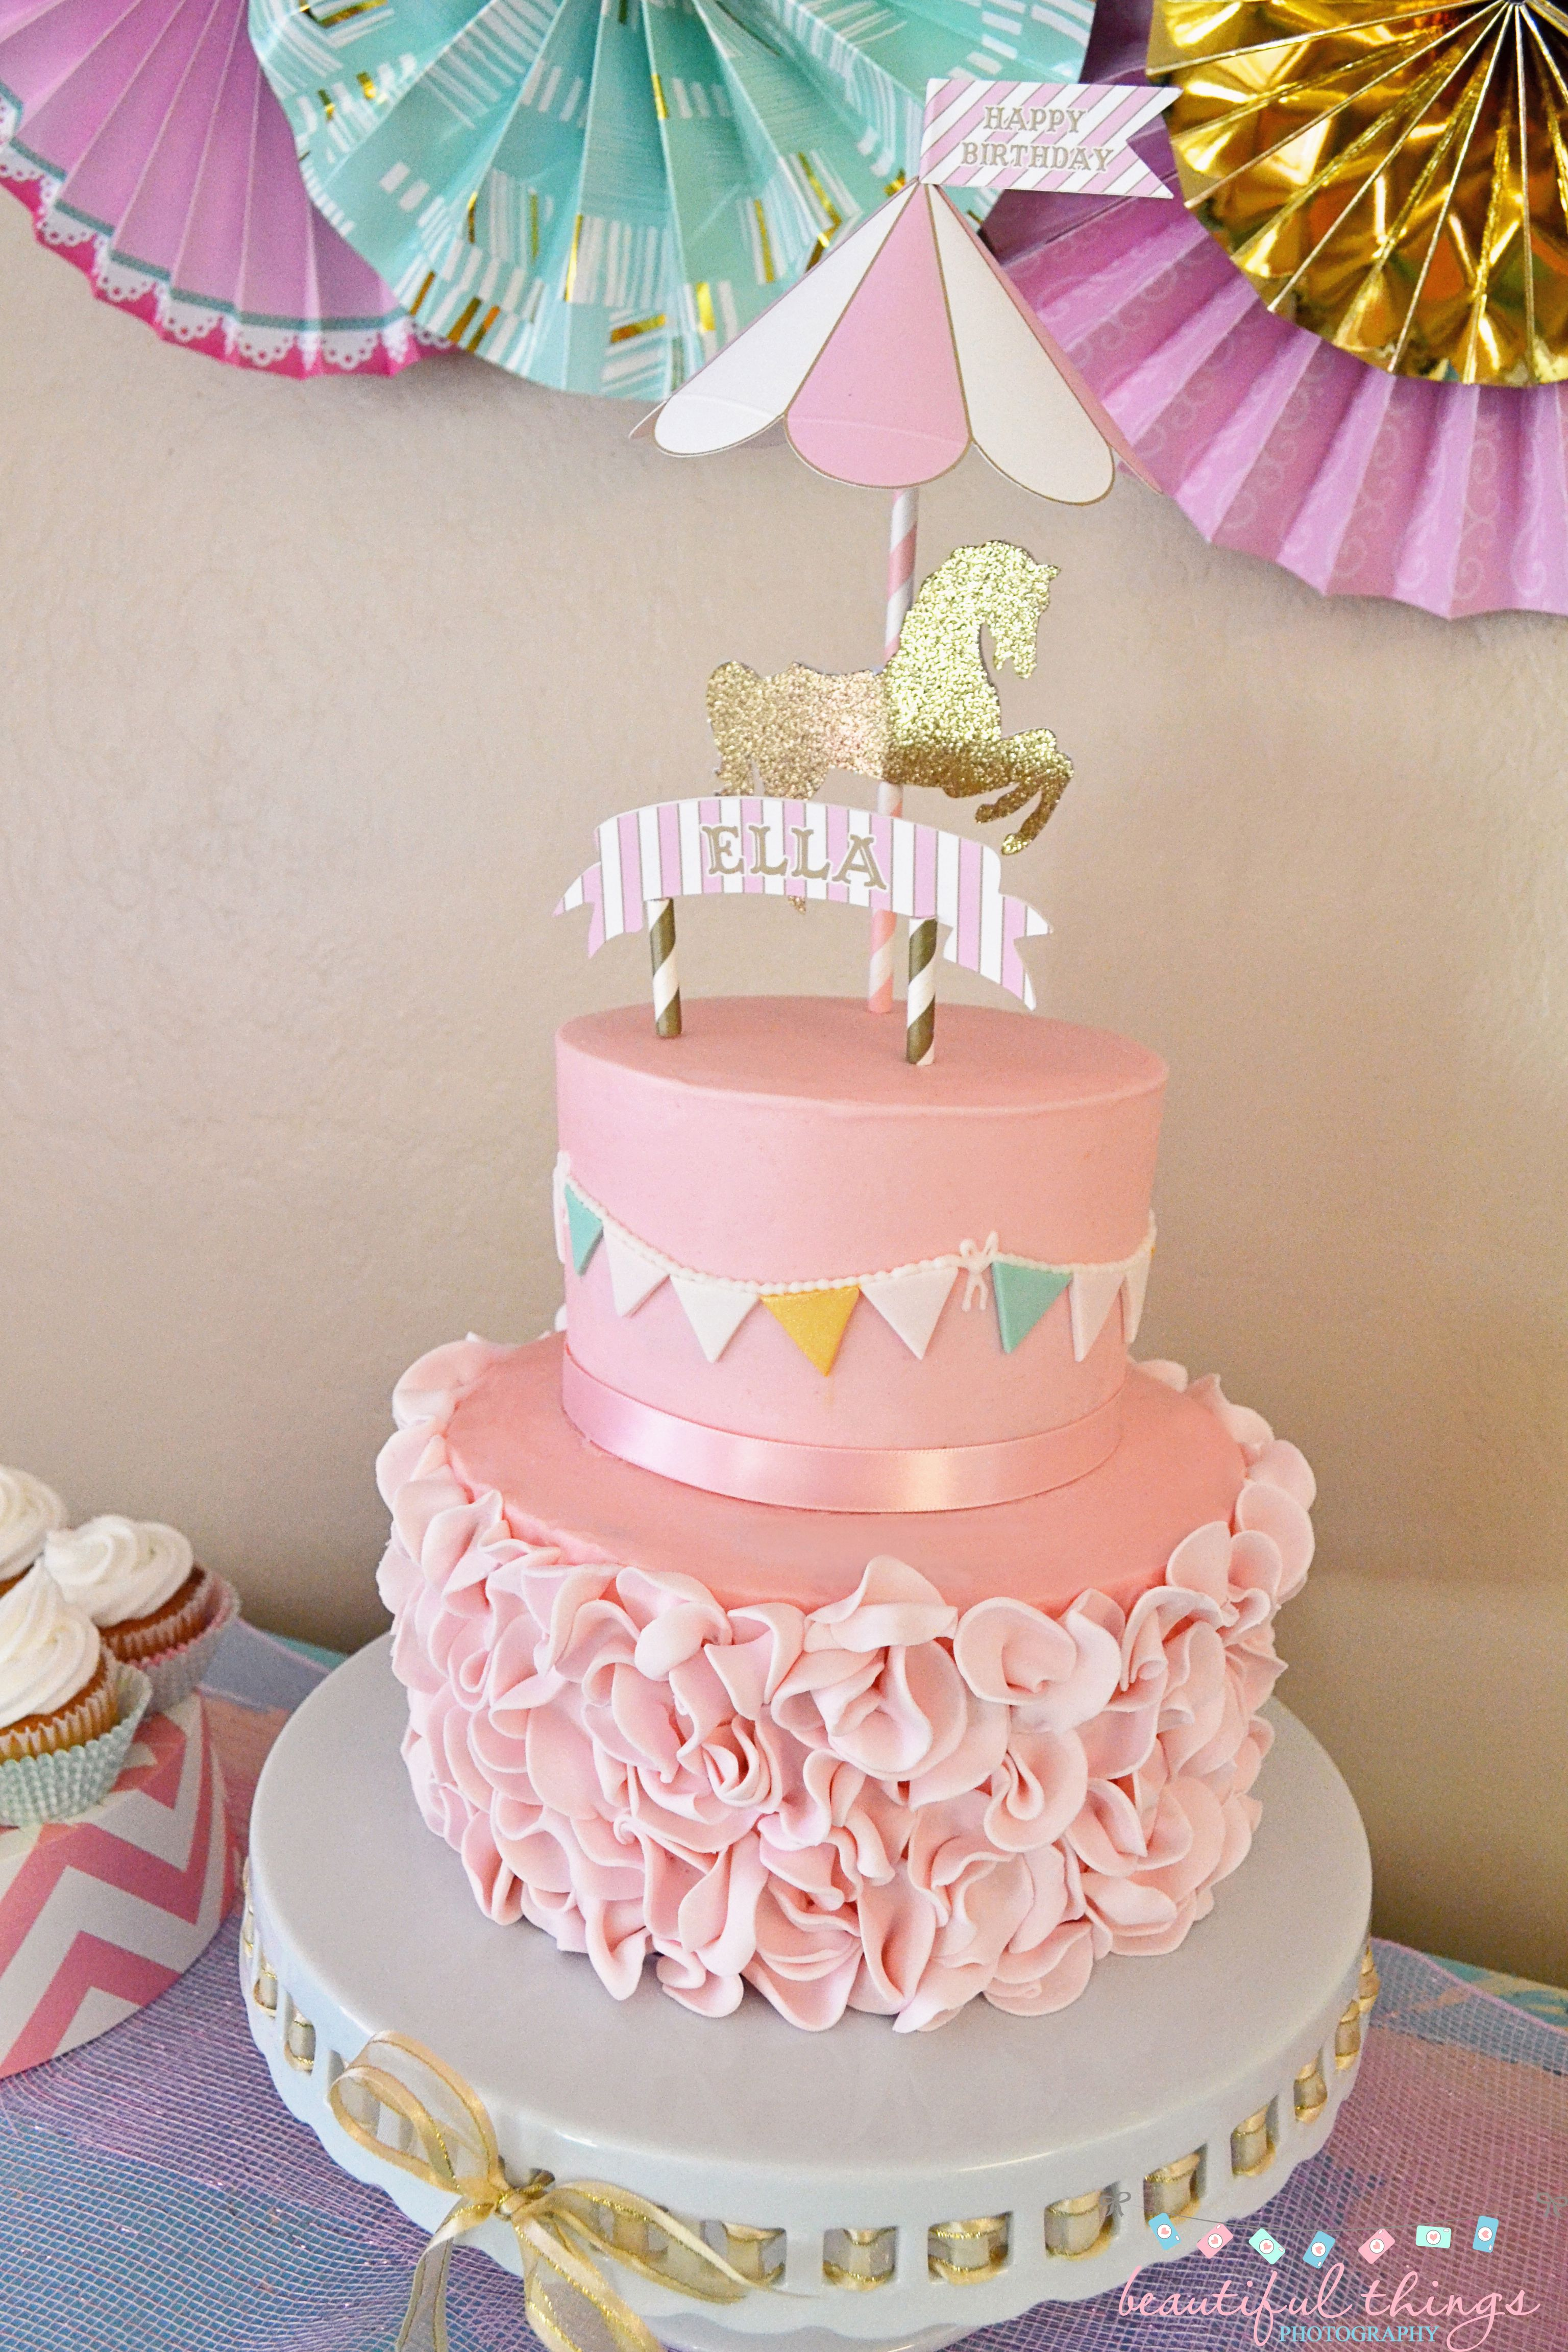 Carousel Birthday Cake /Topper by ooohlalapaperie on Etsy